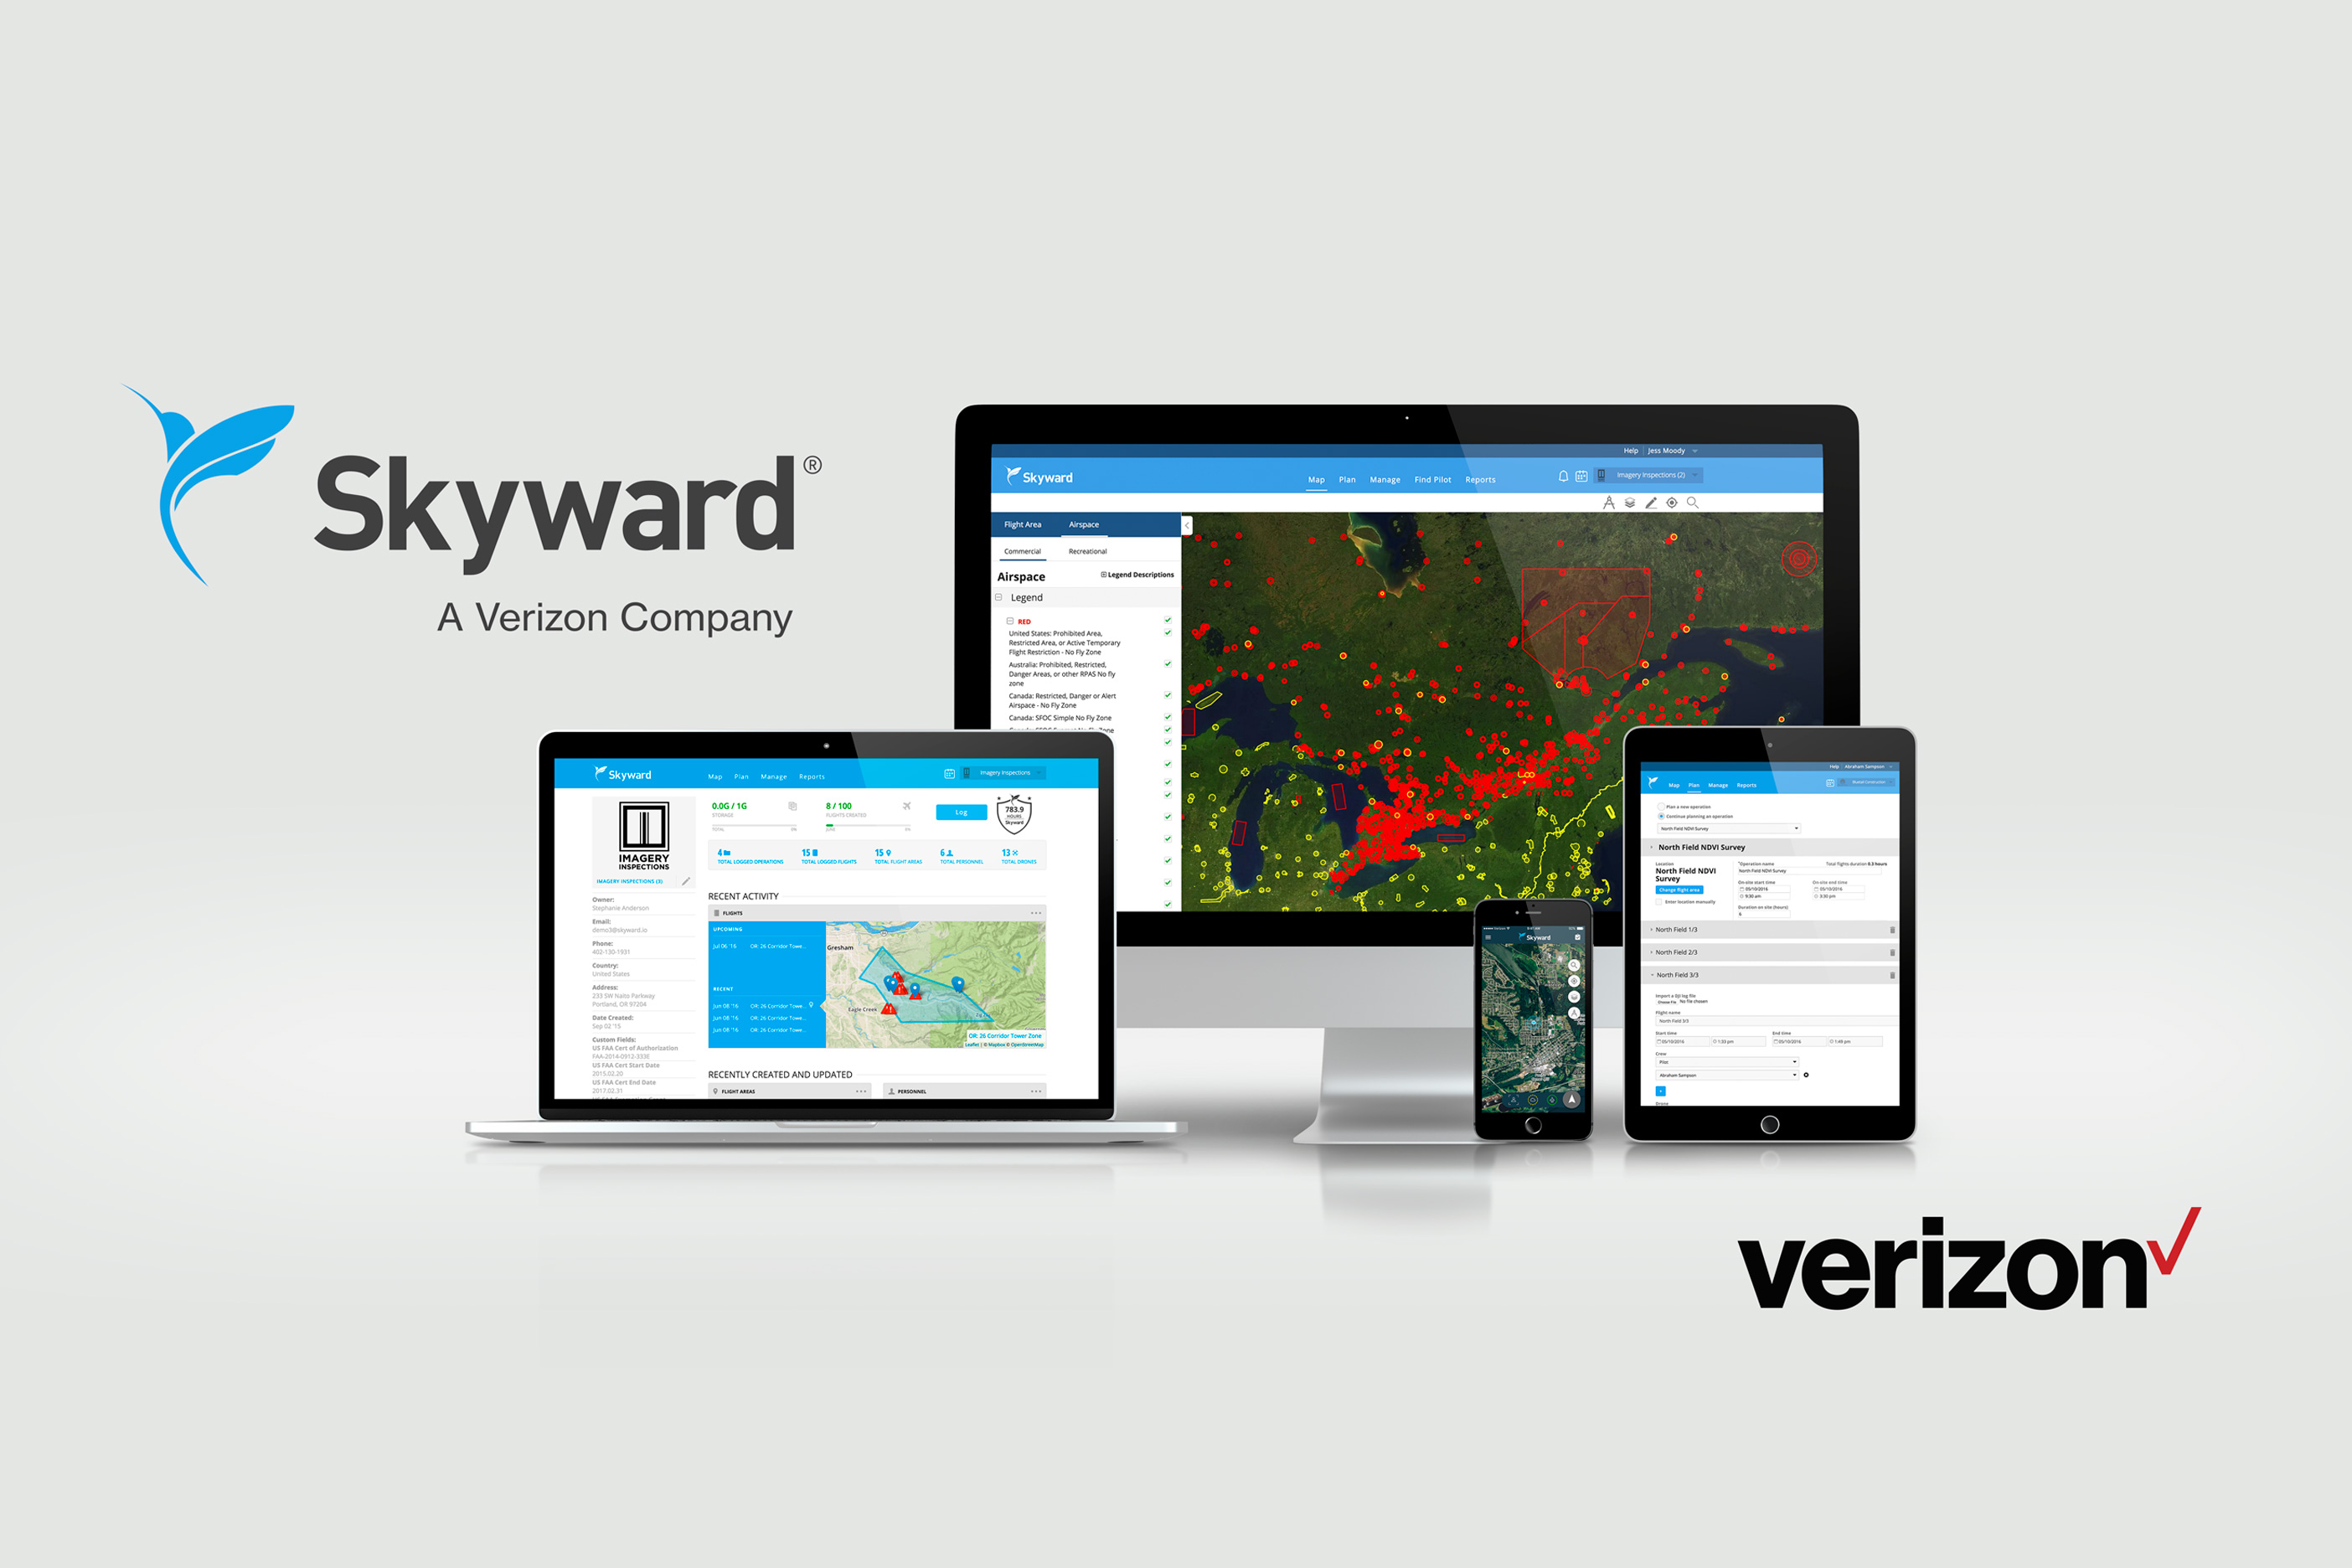 skyward verizon